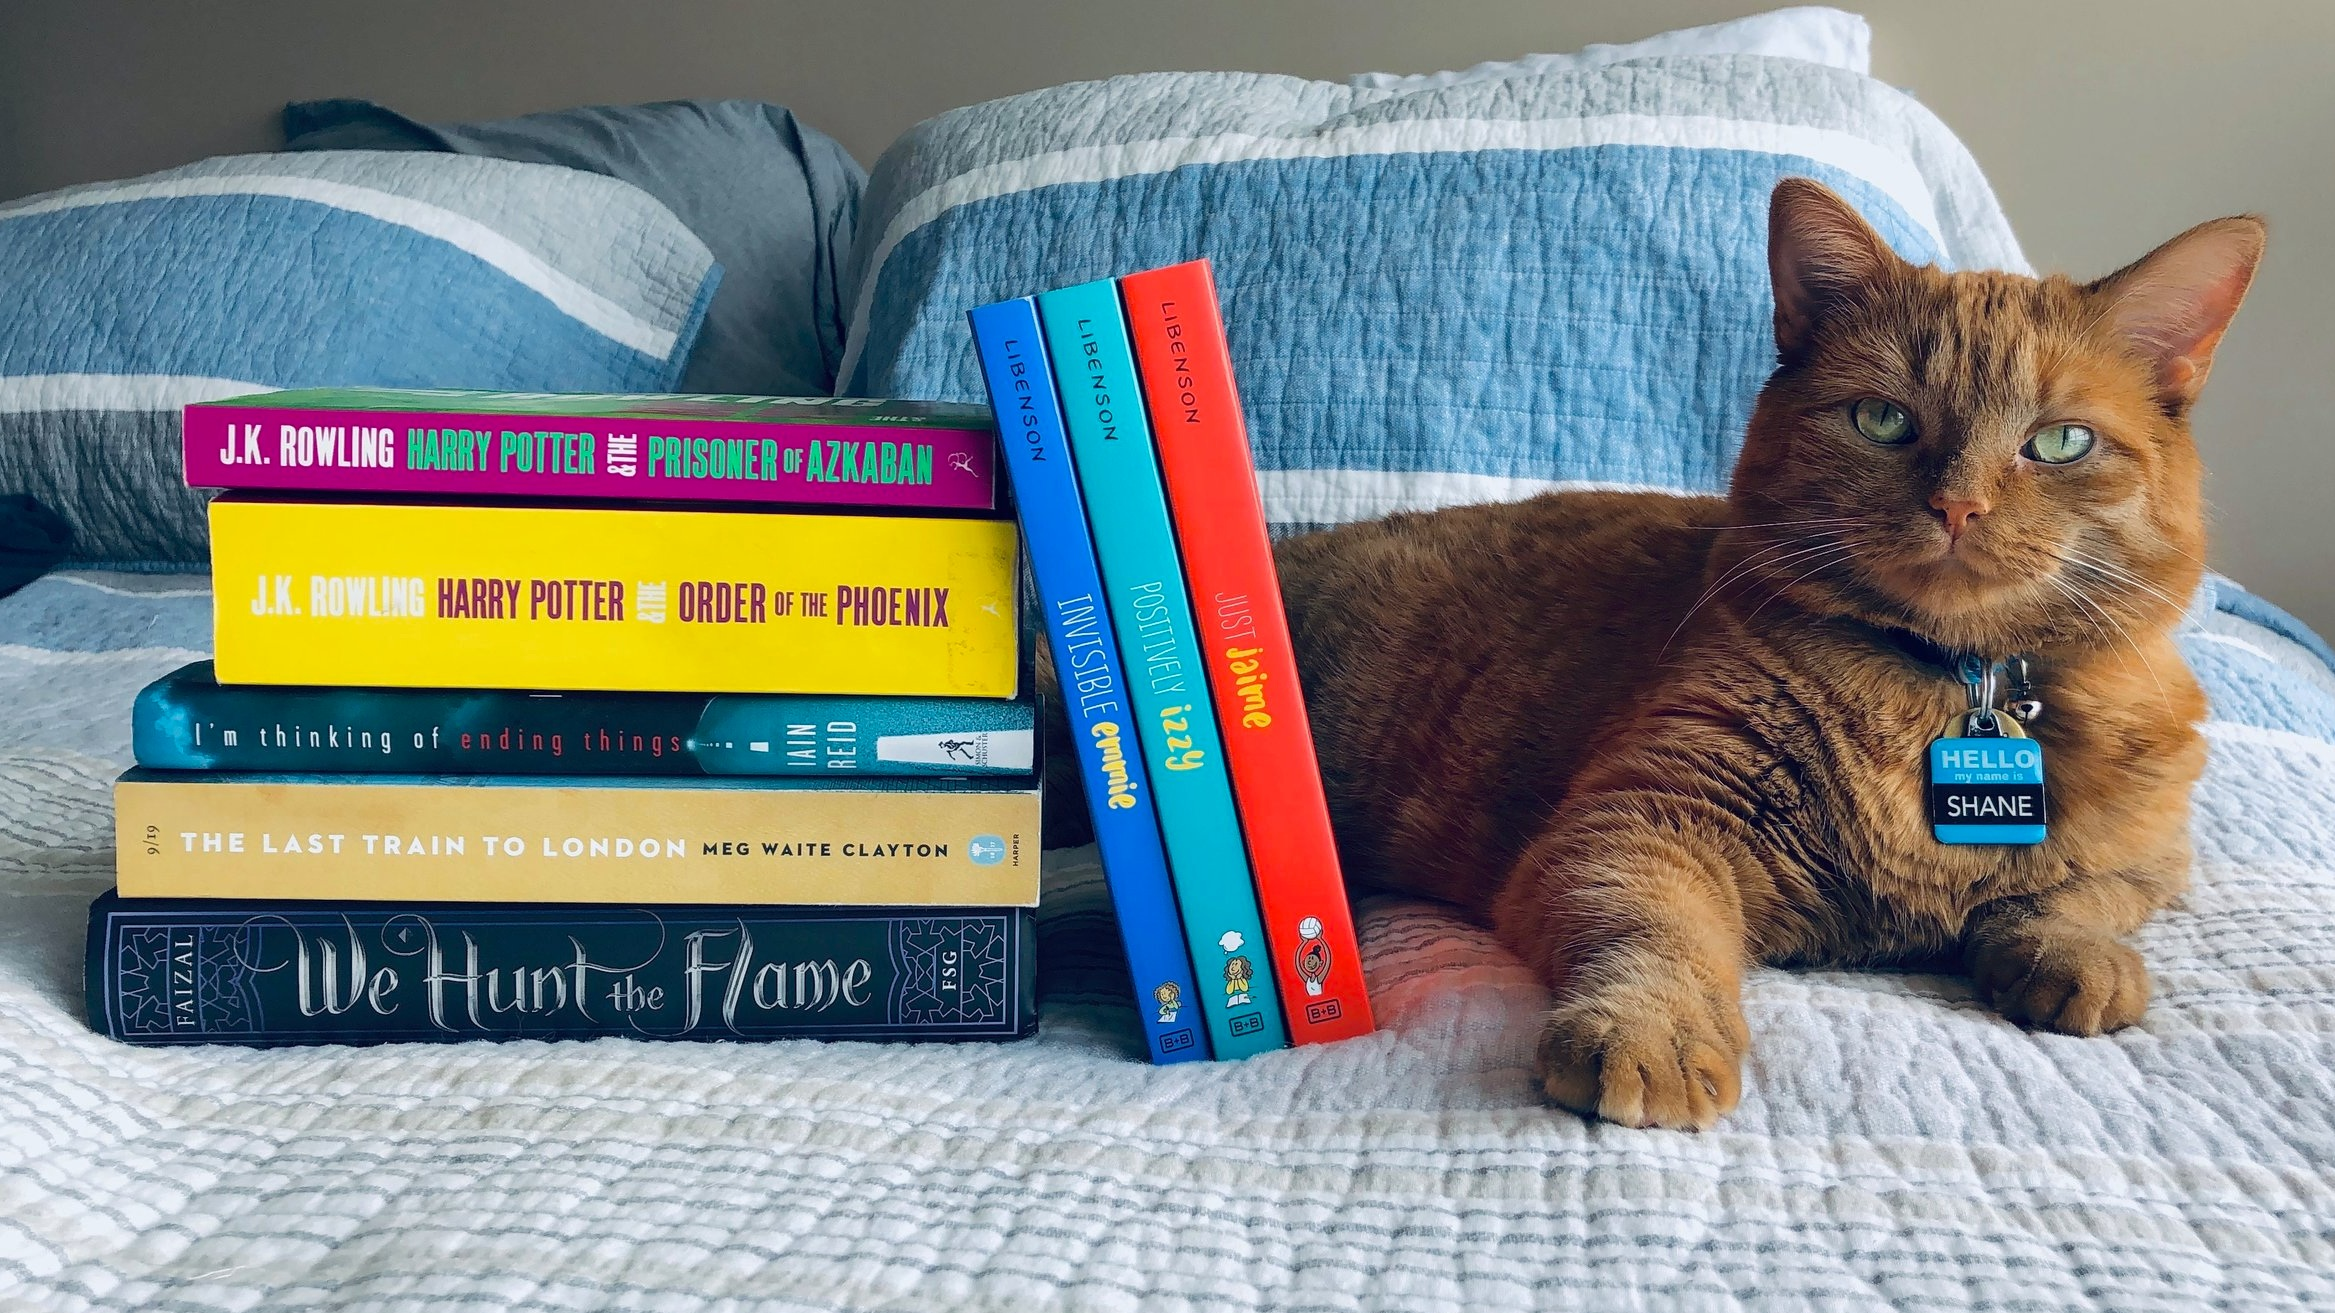 Monthly reading wrap-up: Harry Potter and The Prisoner of Azkaban, The Order of the Phoenix, I'm Thinking of Ending Things, Last Train to London, We Hunt the Flame, Invisible Emmie, Positively Izzy, and Just Jaime